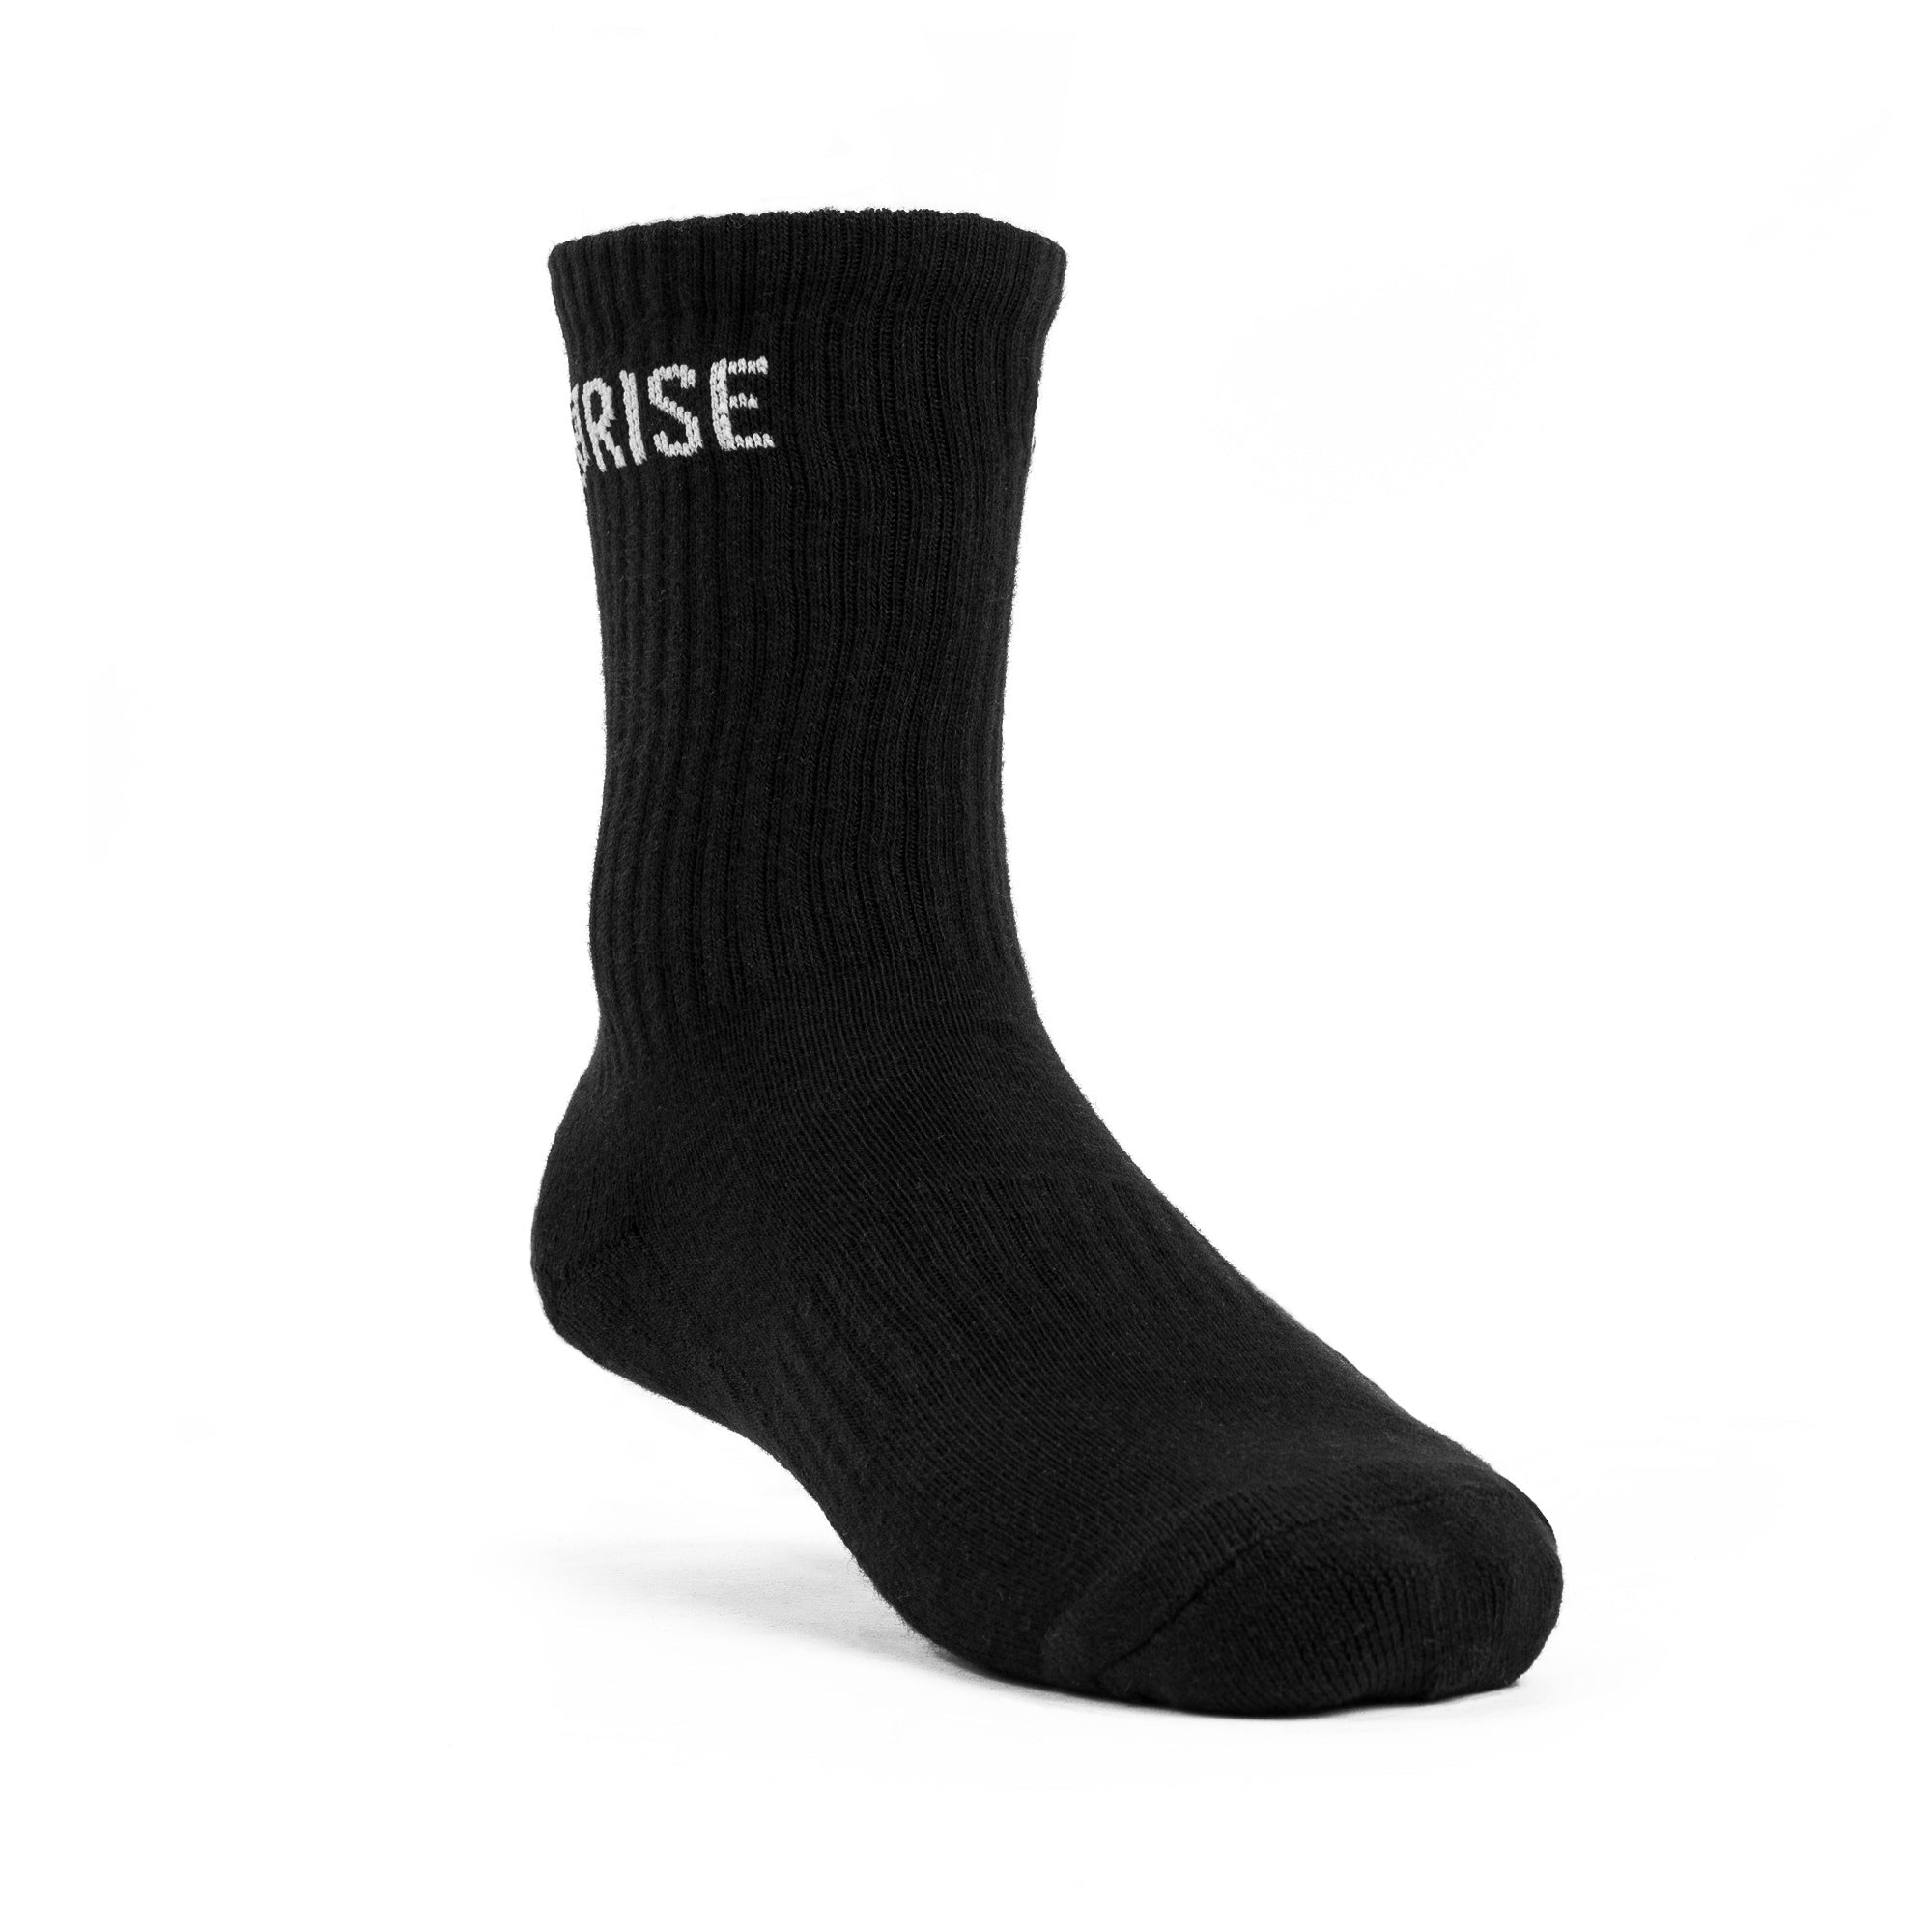 Rise Crew Socks – Black